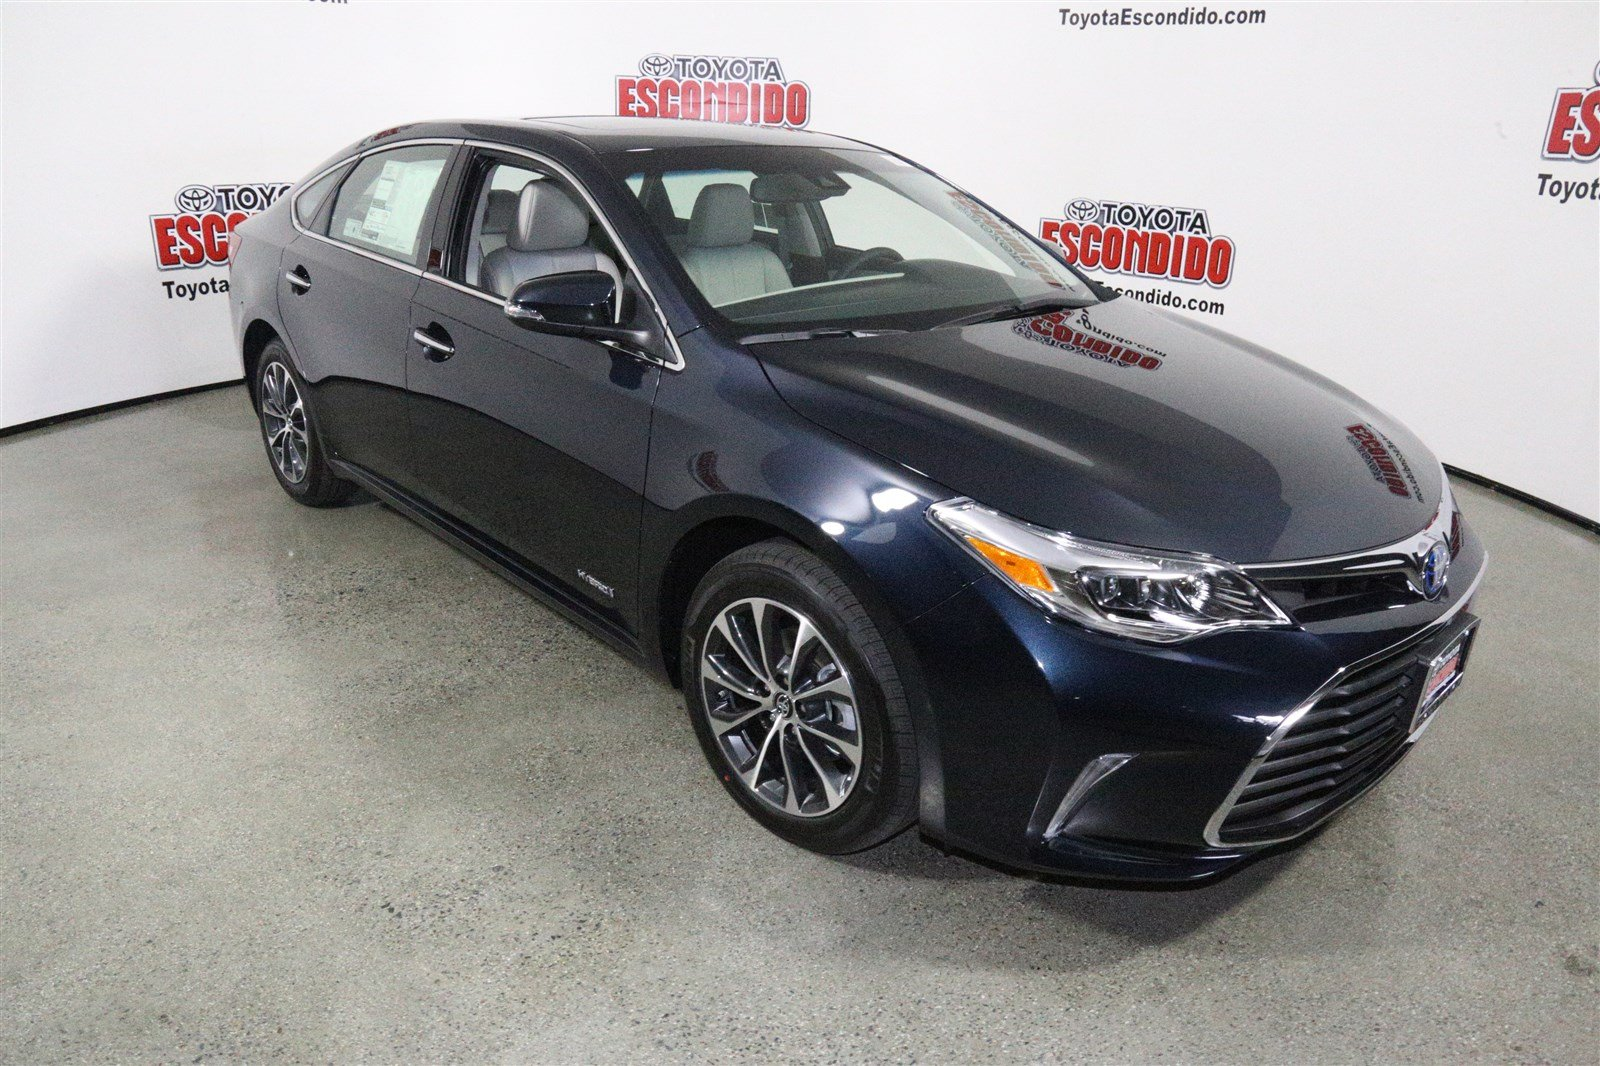 new 2018 toyota avalon hybrid xle premium 4dr car in escondido 1014587 toyota escondido. Black Bedroom Furniture Sets. Home Design Ideas